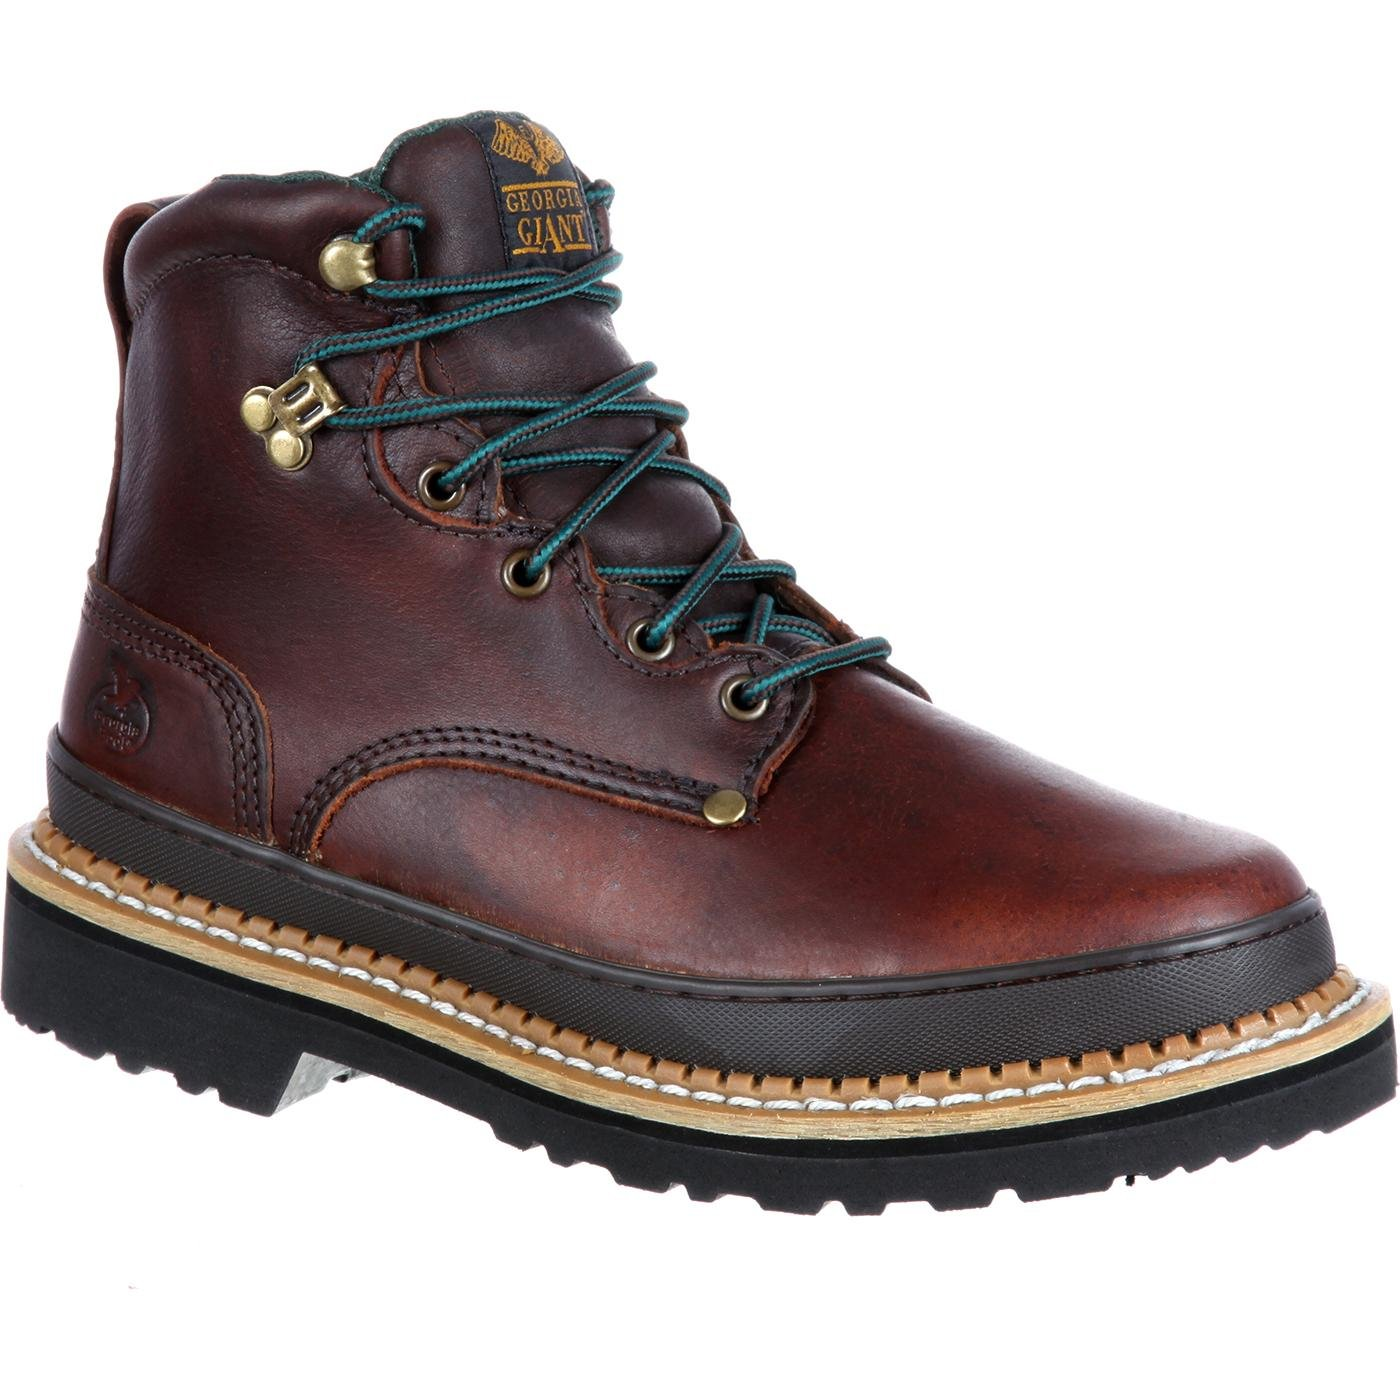 Georgia Boot Mens Georgia Giant G6274 Work Boot